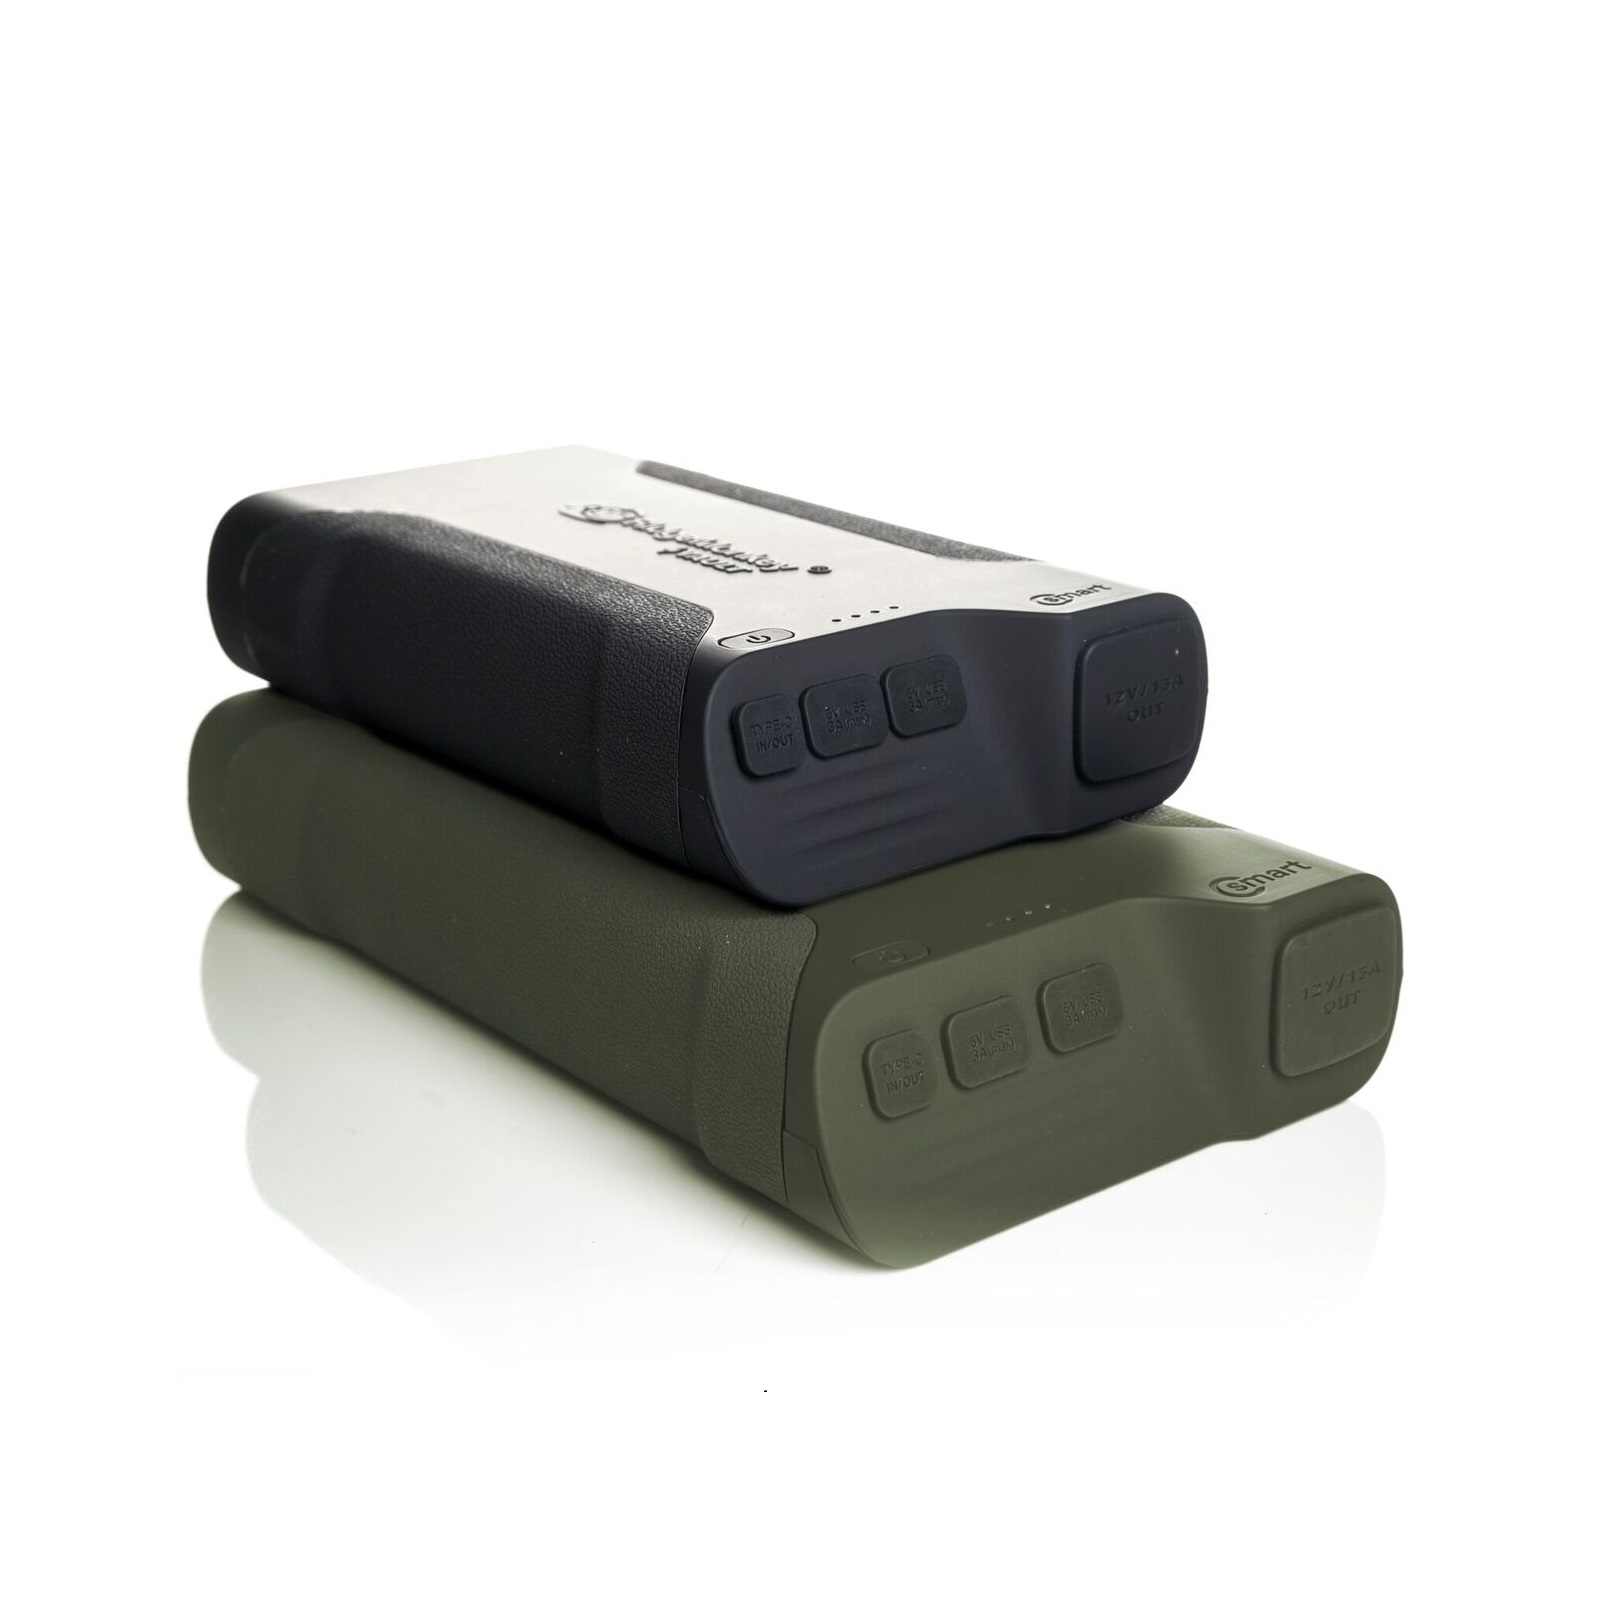 RidgeMonkey powerbanka Vault C-Smart 77850mAh| Gunmetal Green/zelená